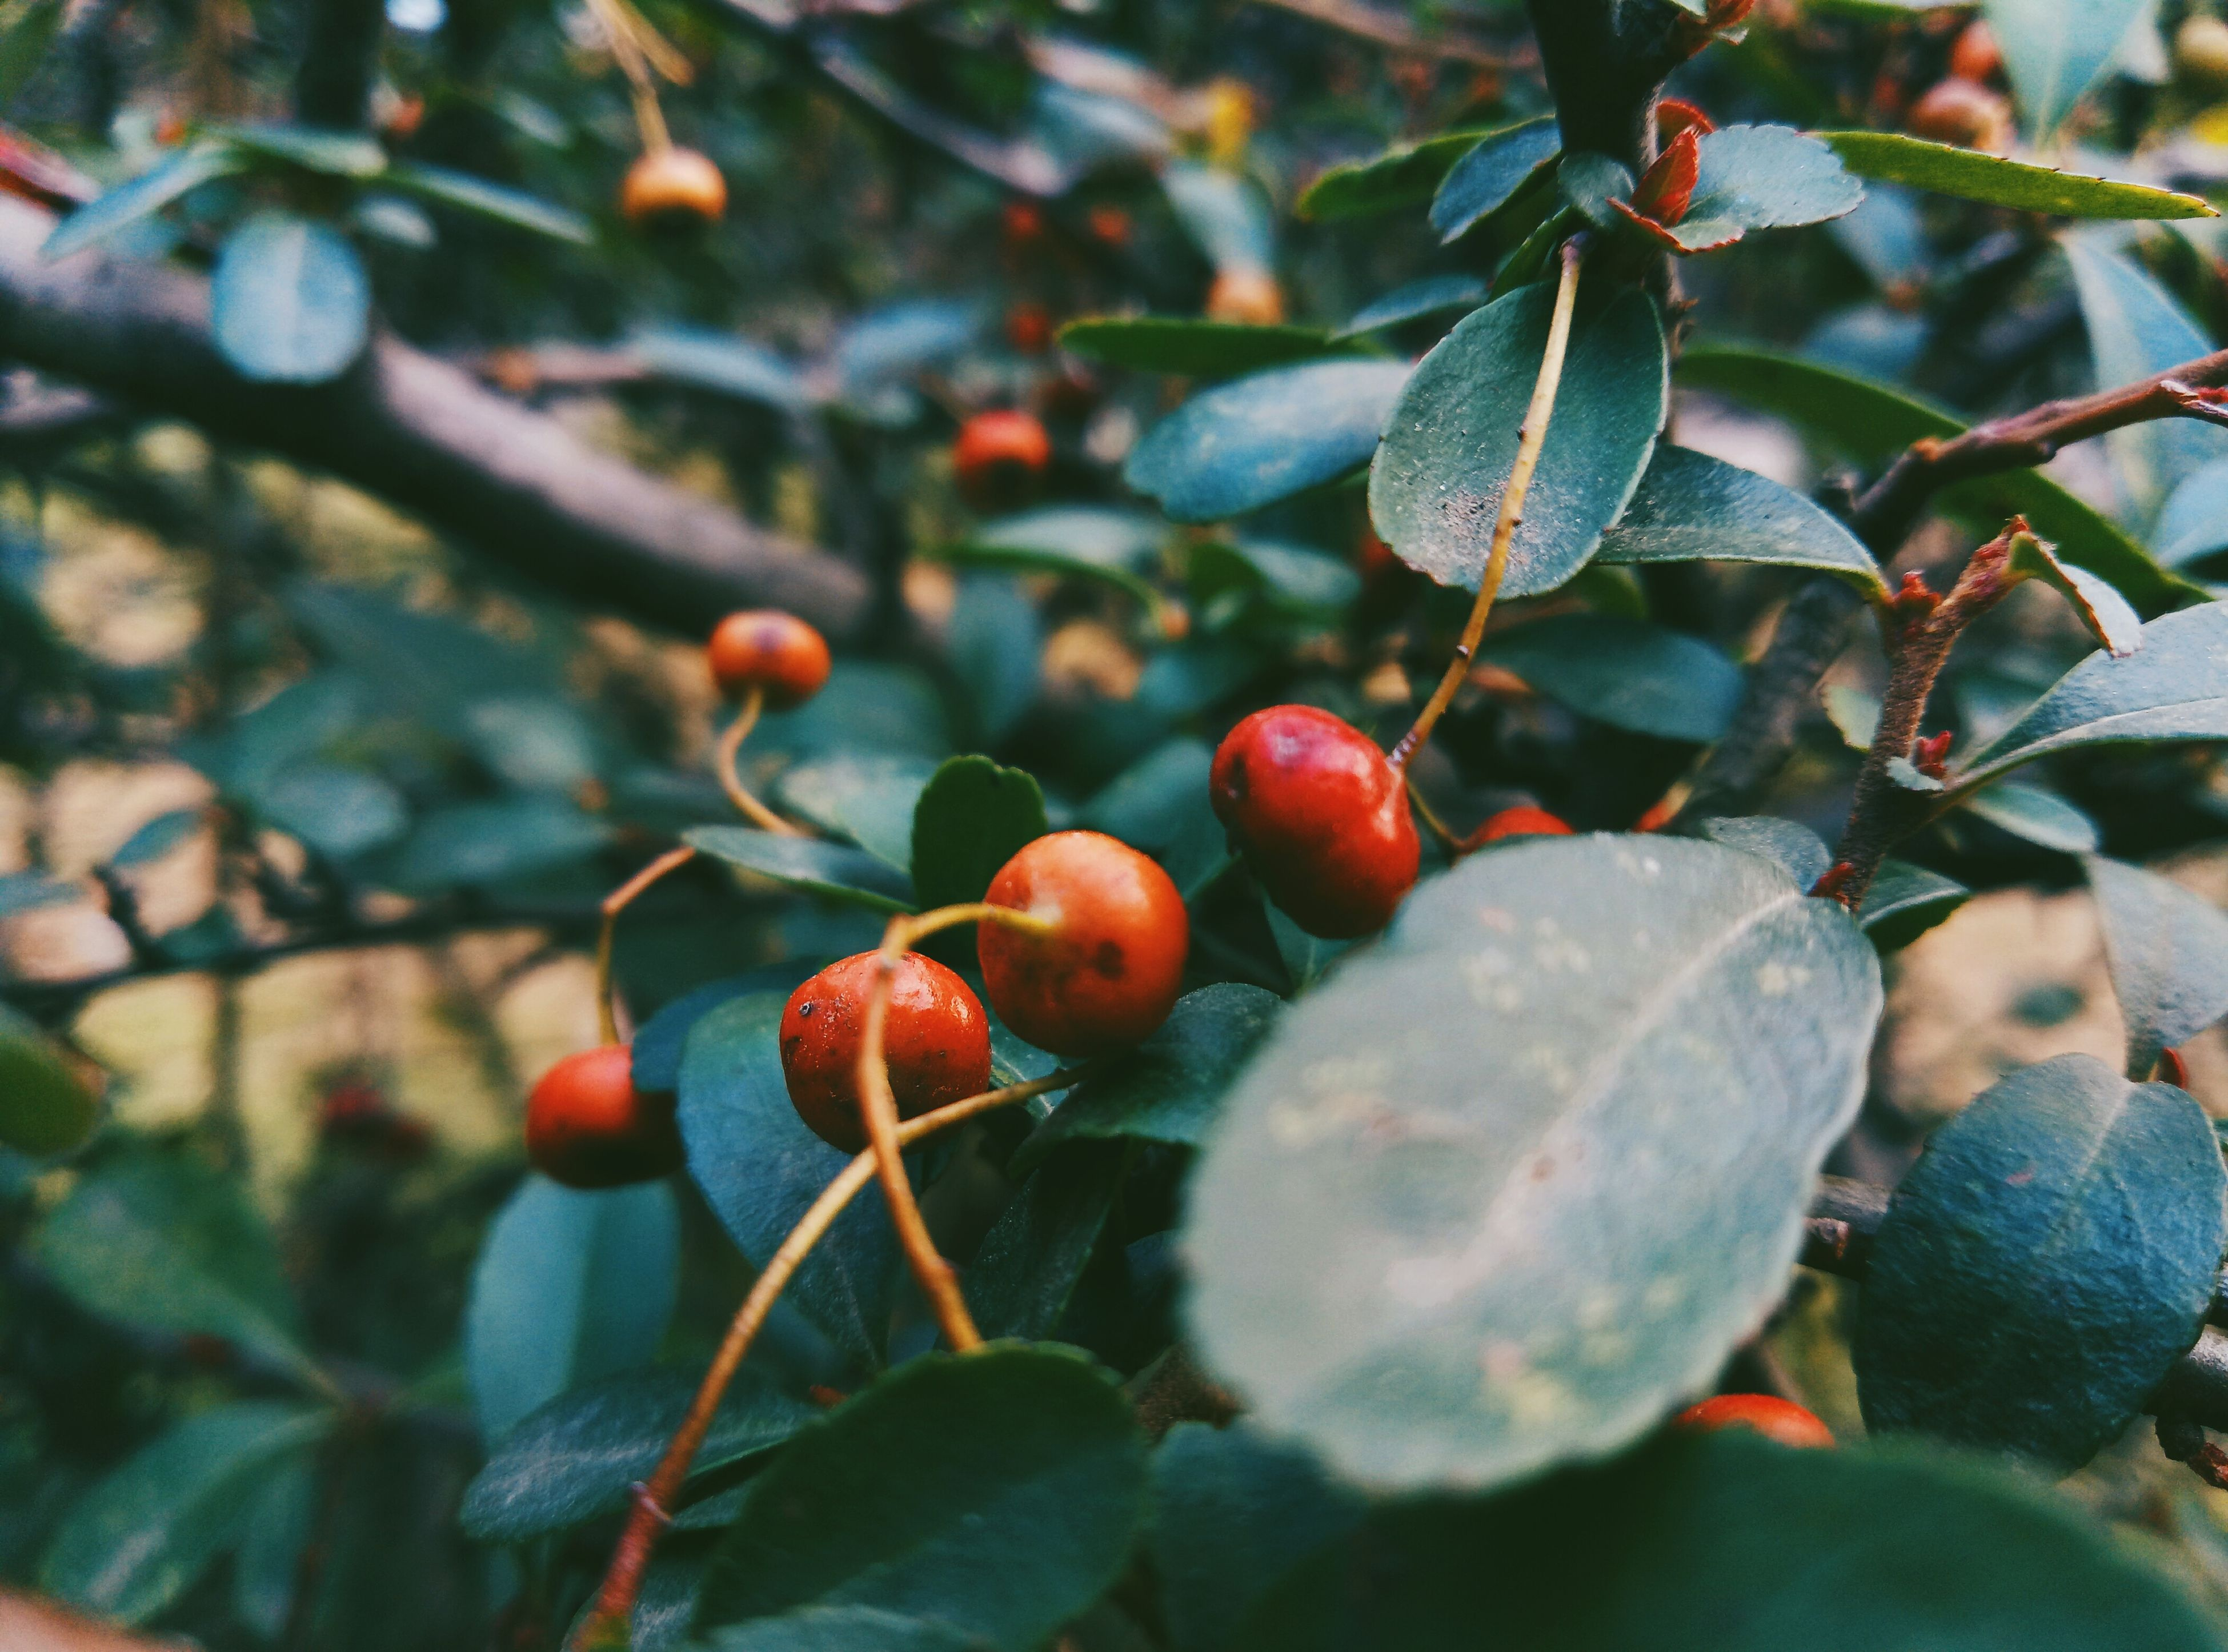 fruit, food and drink, growth, nature, growing, leaf, outdoors, food, tree, day, rose hip, no people, rowanberry, freshness, focus on foreground, close-up, branch, healthy eating, plant, red, beauty in nature